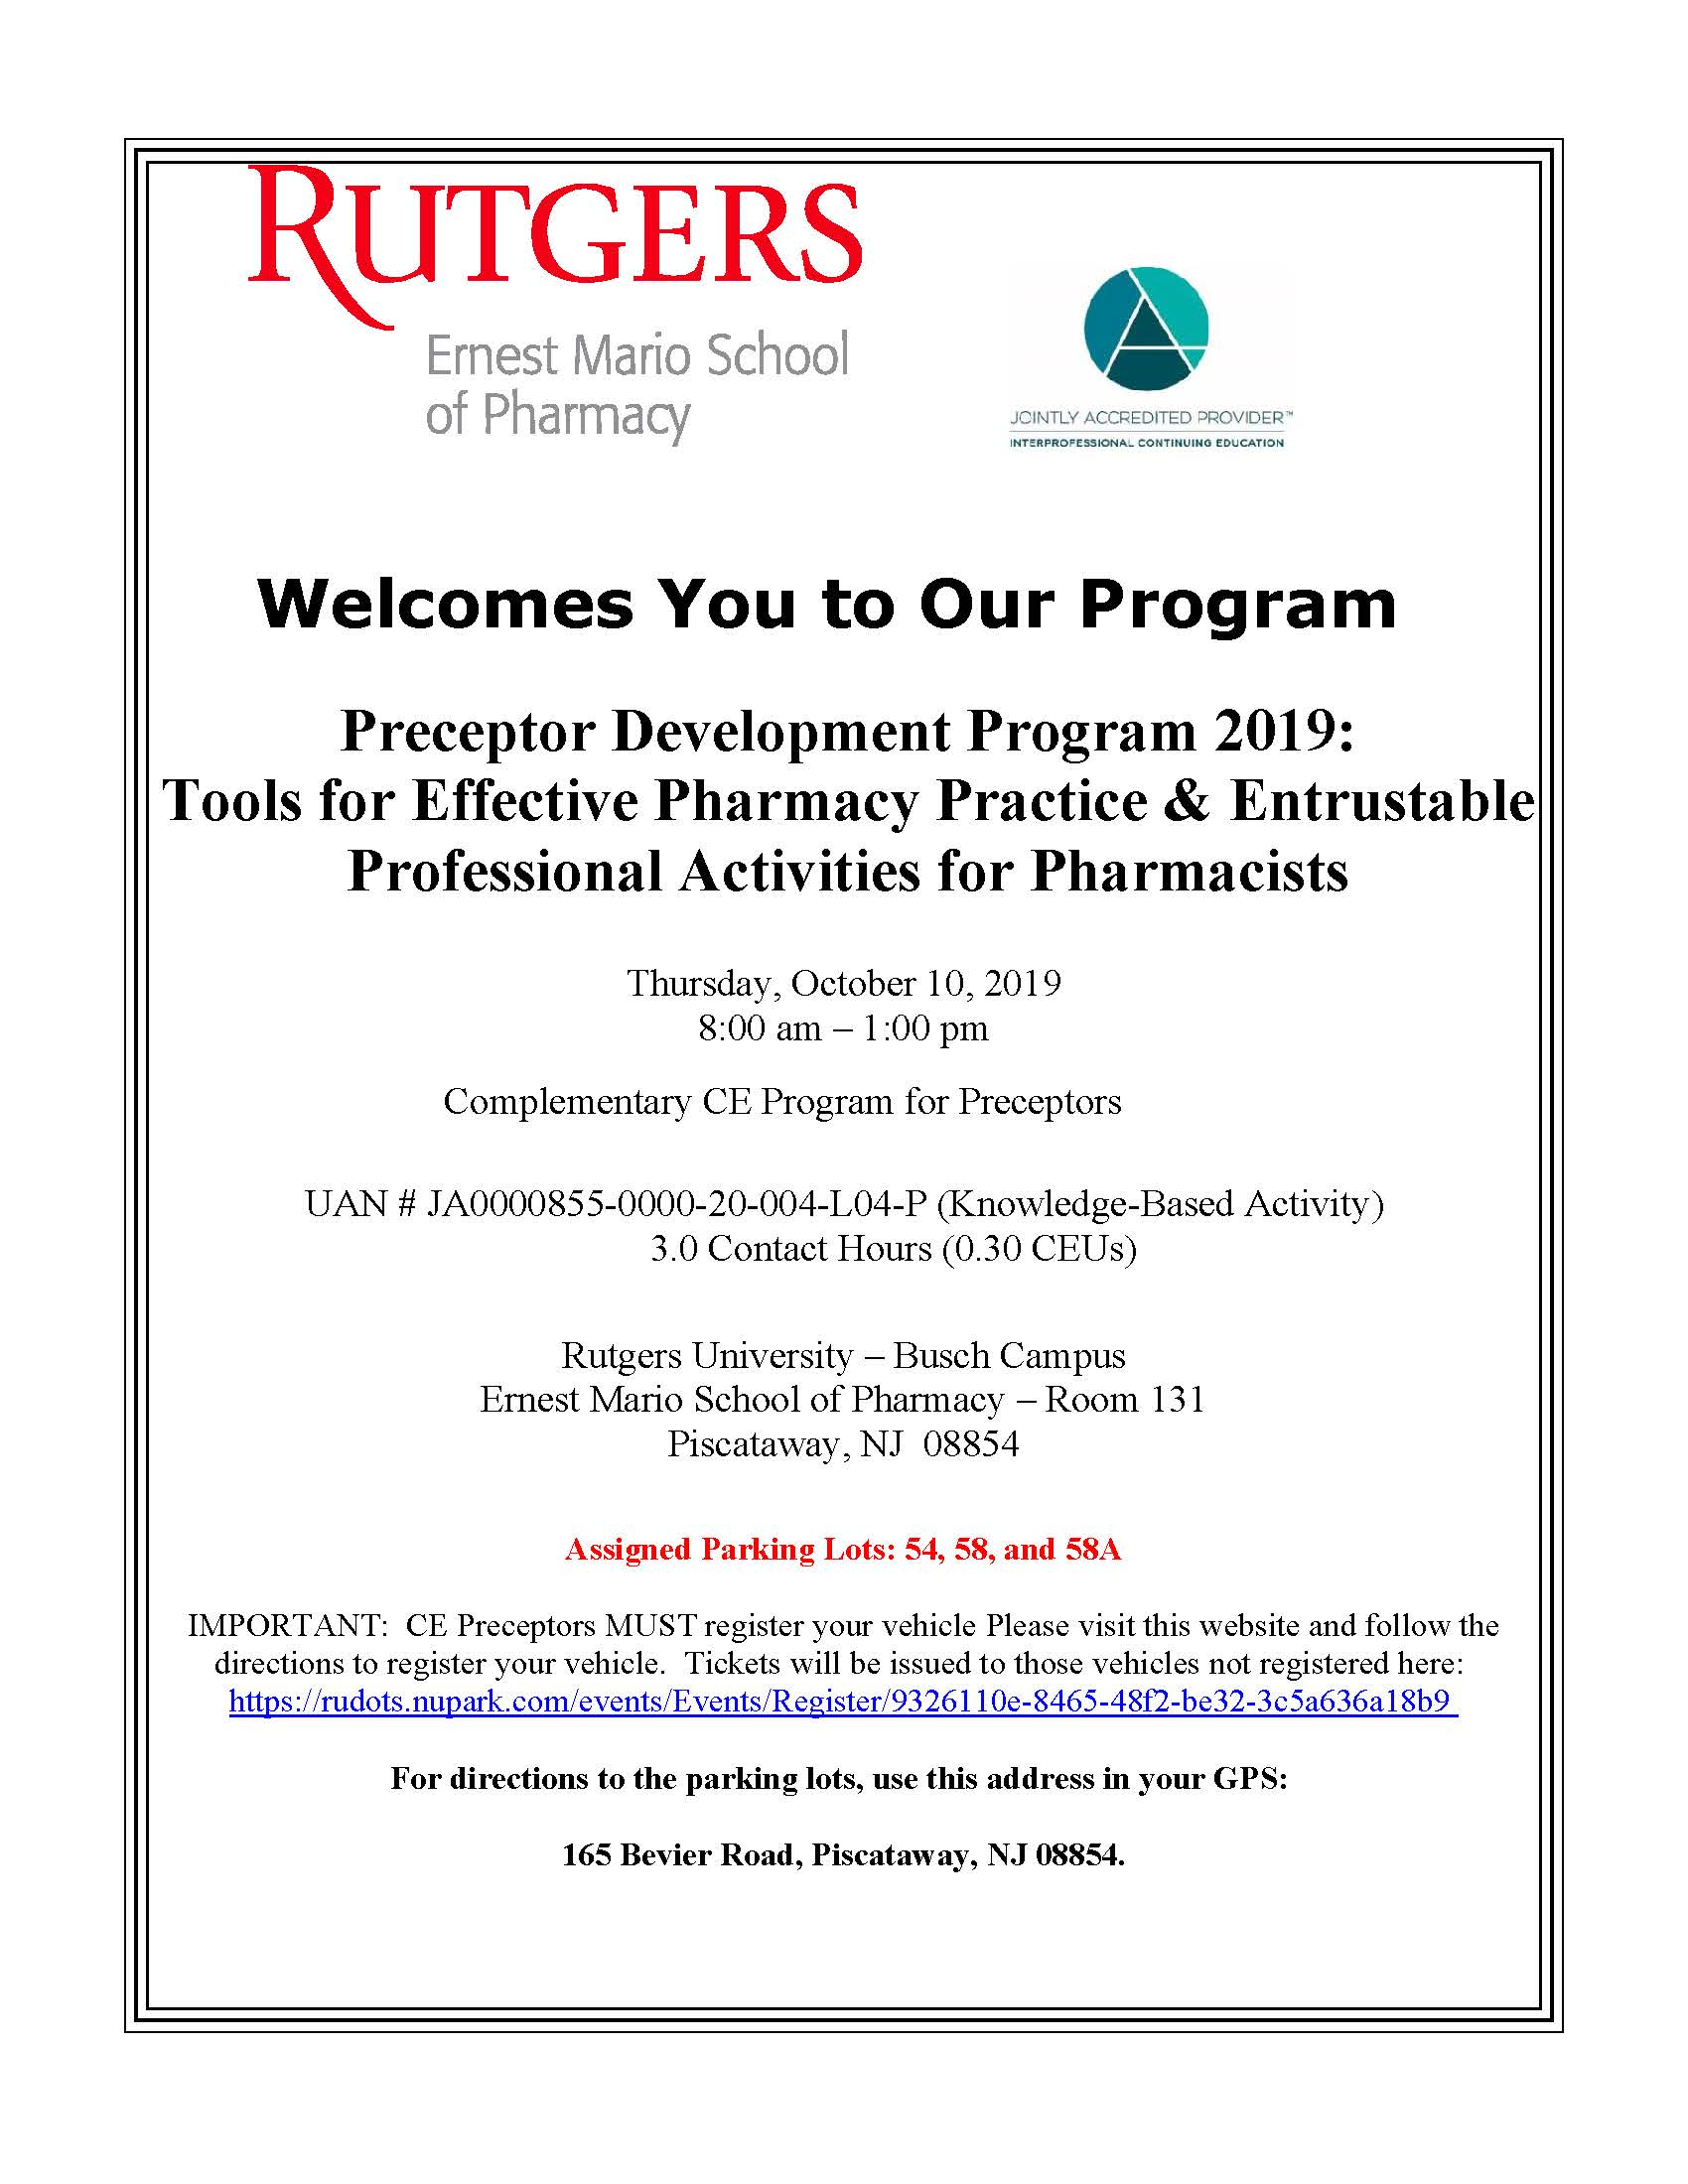 Preceptor Development Program 2019:  Overview of Entrustable Professional Activities for Pharmacy Students & Tools for Effective Pharmacy Practice Banner